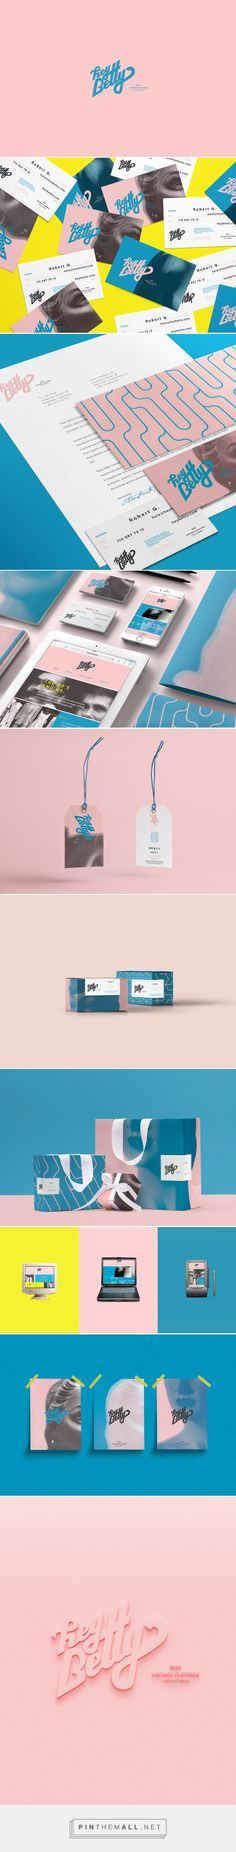 Hey Betty Vintage Clothing Branding by Sofia Villarreal | Fivestar Branding Agency – Design and Branding Agency & Inspiration Gallery